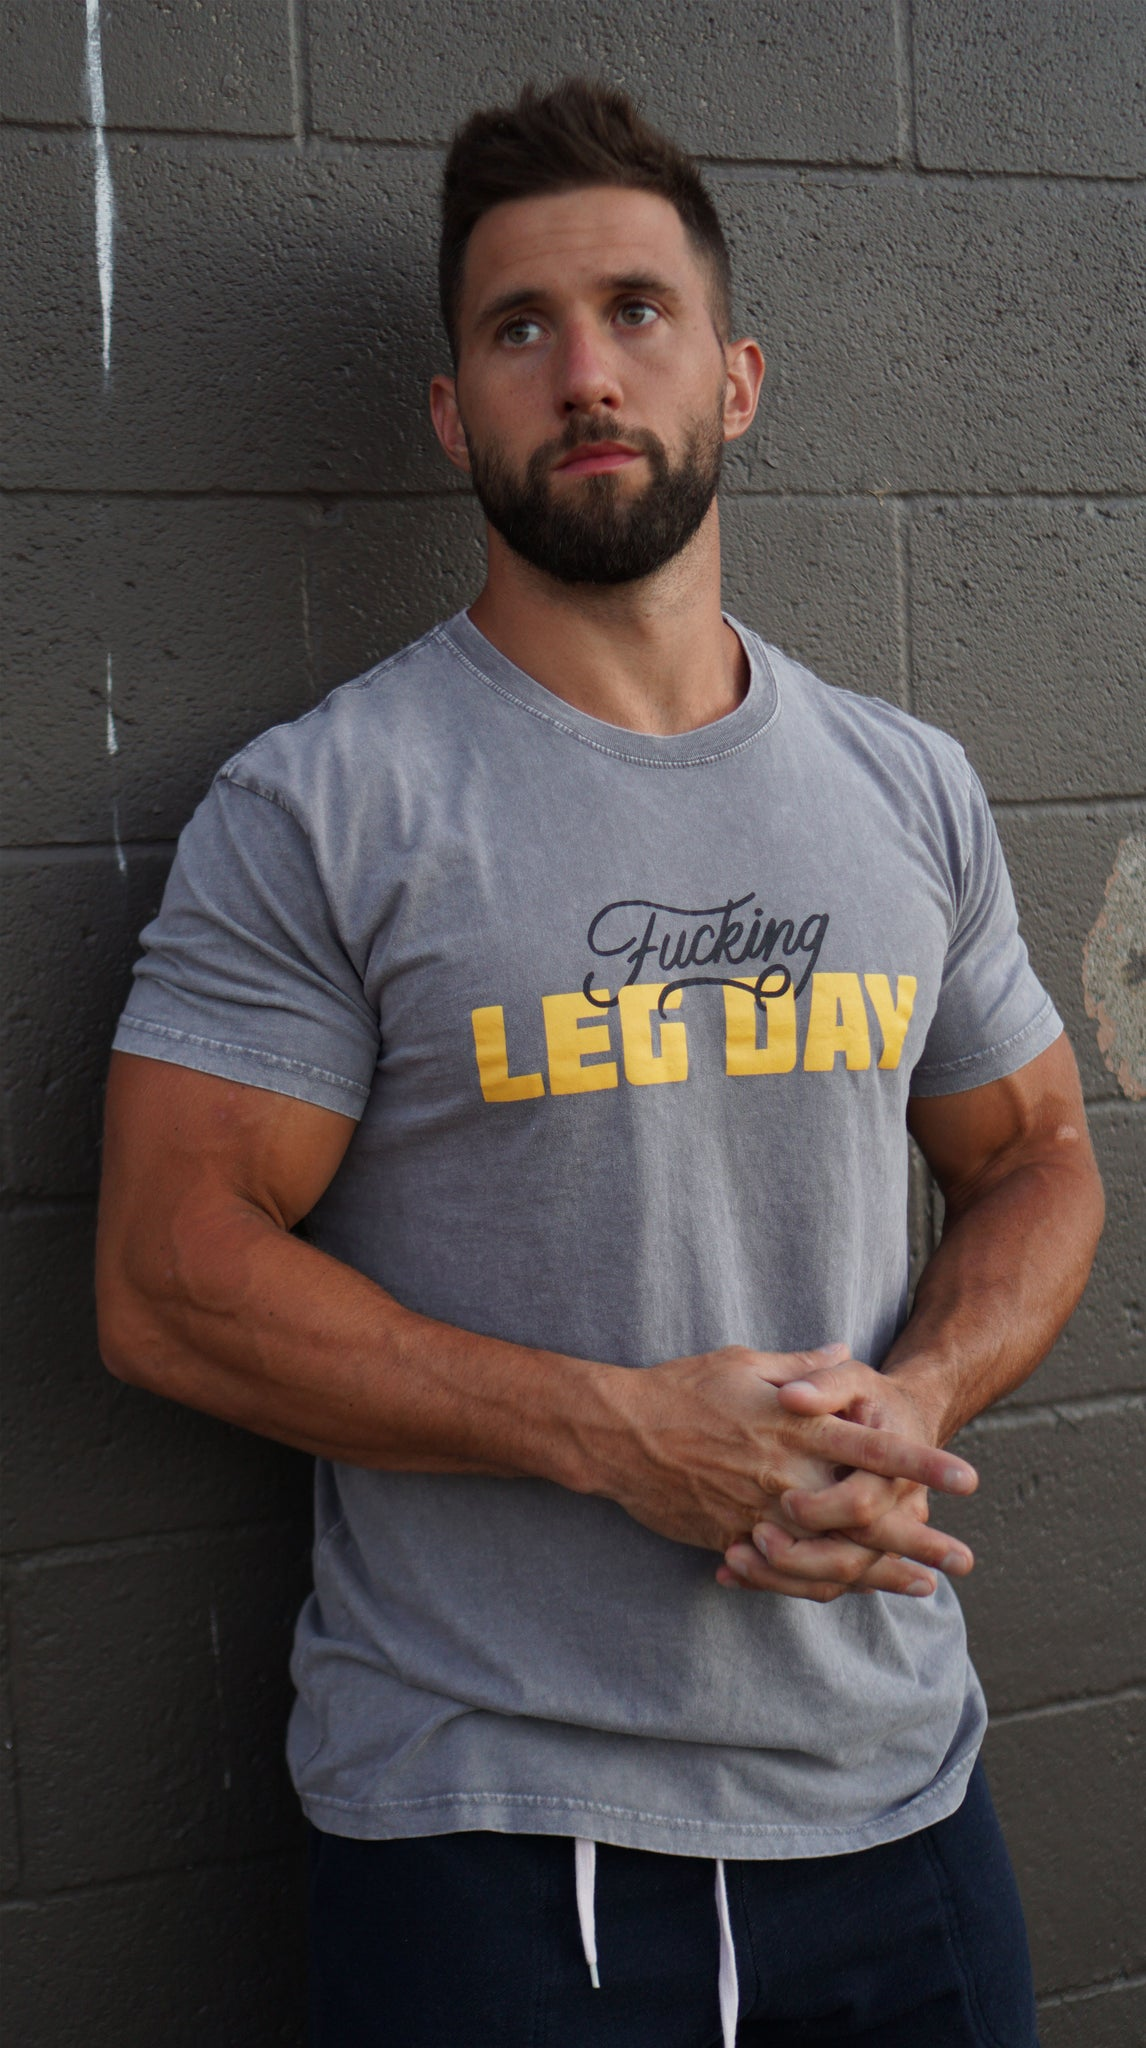 Fucking Leg Day Staple Tee - Ash stone